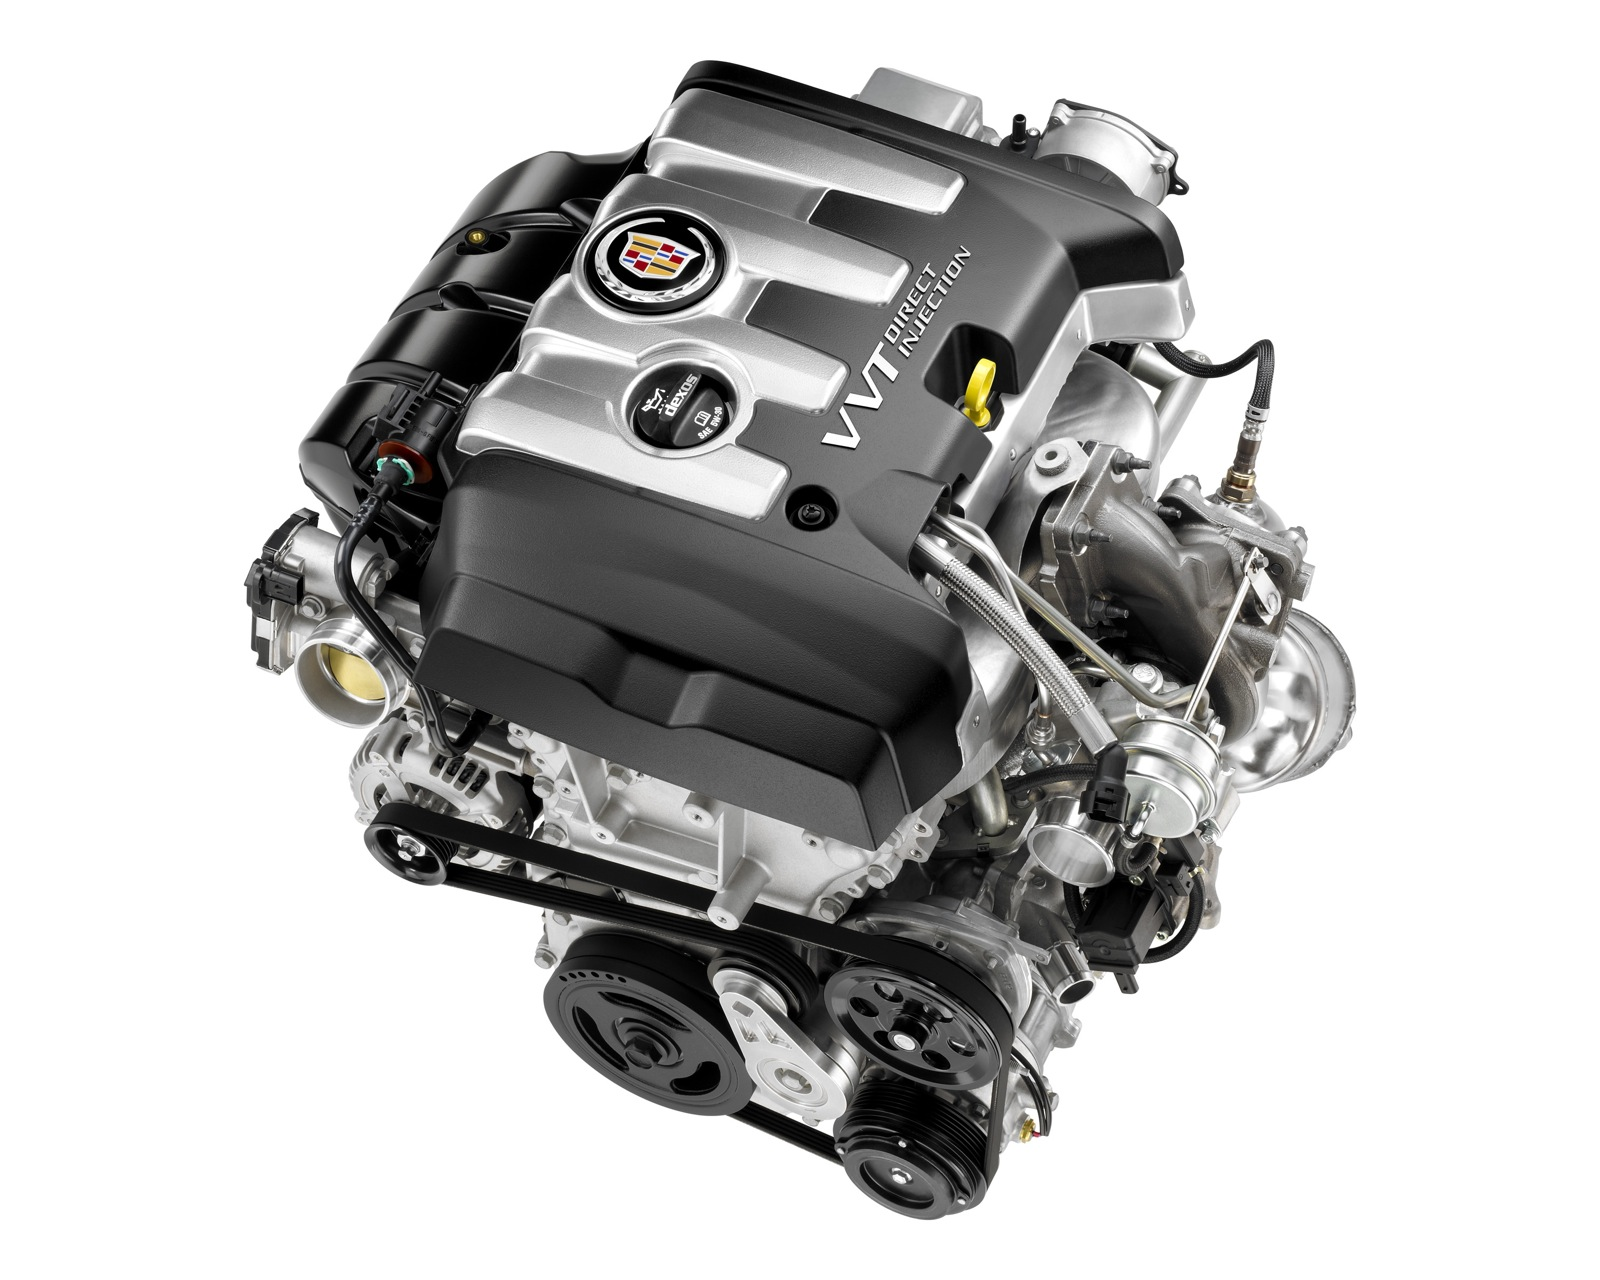 2013 Cadillac ATS To Get 270 HP Turbocharged Four-Cylinder